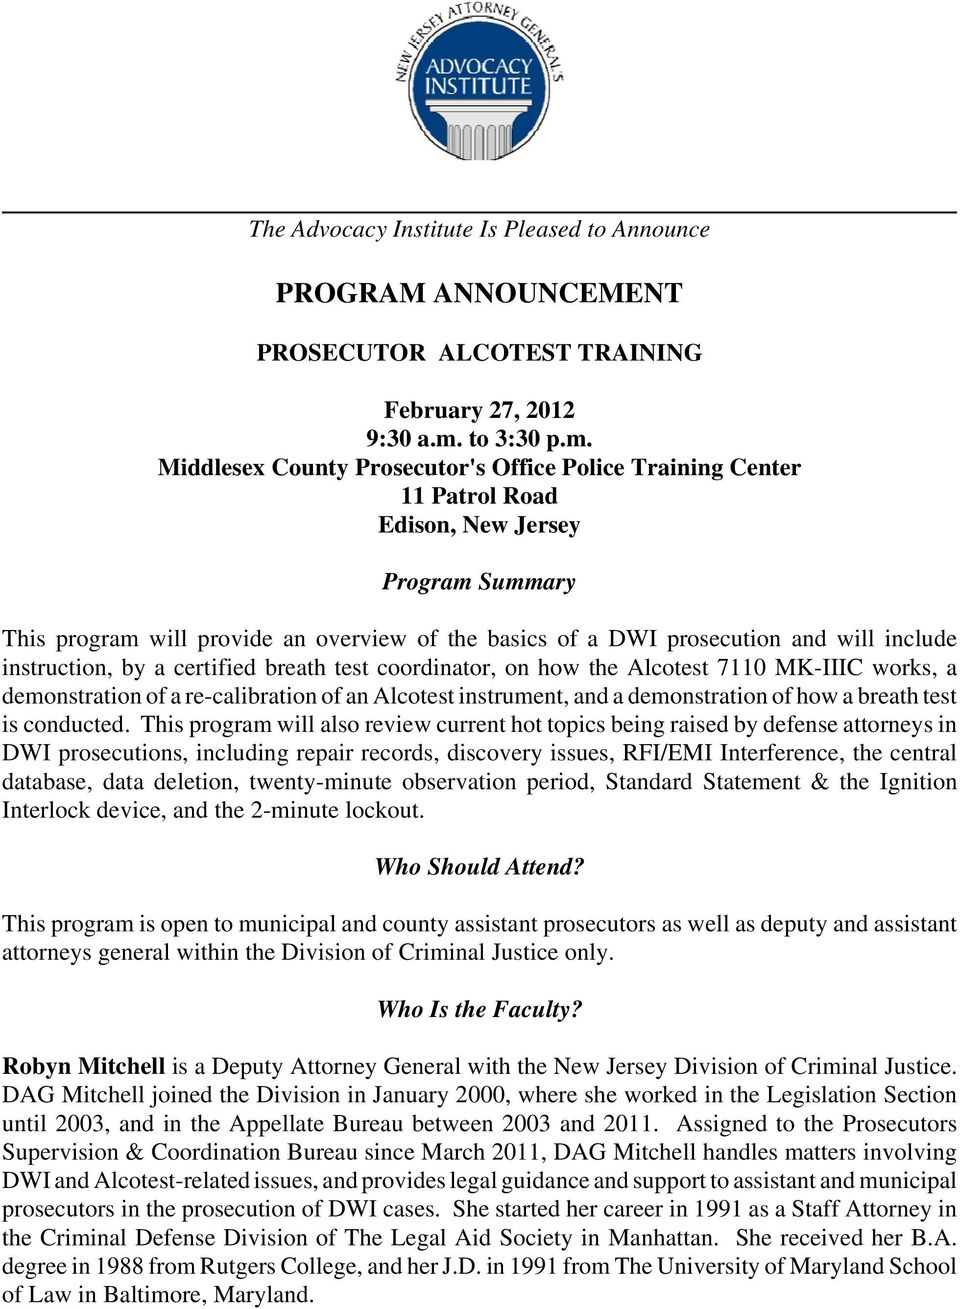 Middlesex County Prosecutor's Office Police Training Center 11 Patrol Road Edison, New Jersey Program Summary This program will provide an overview of the basics of a DWI prosecution and will include